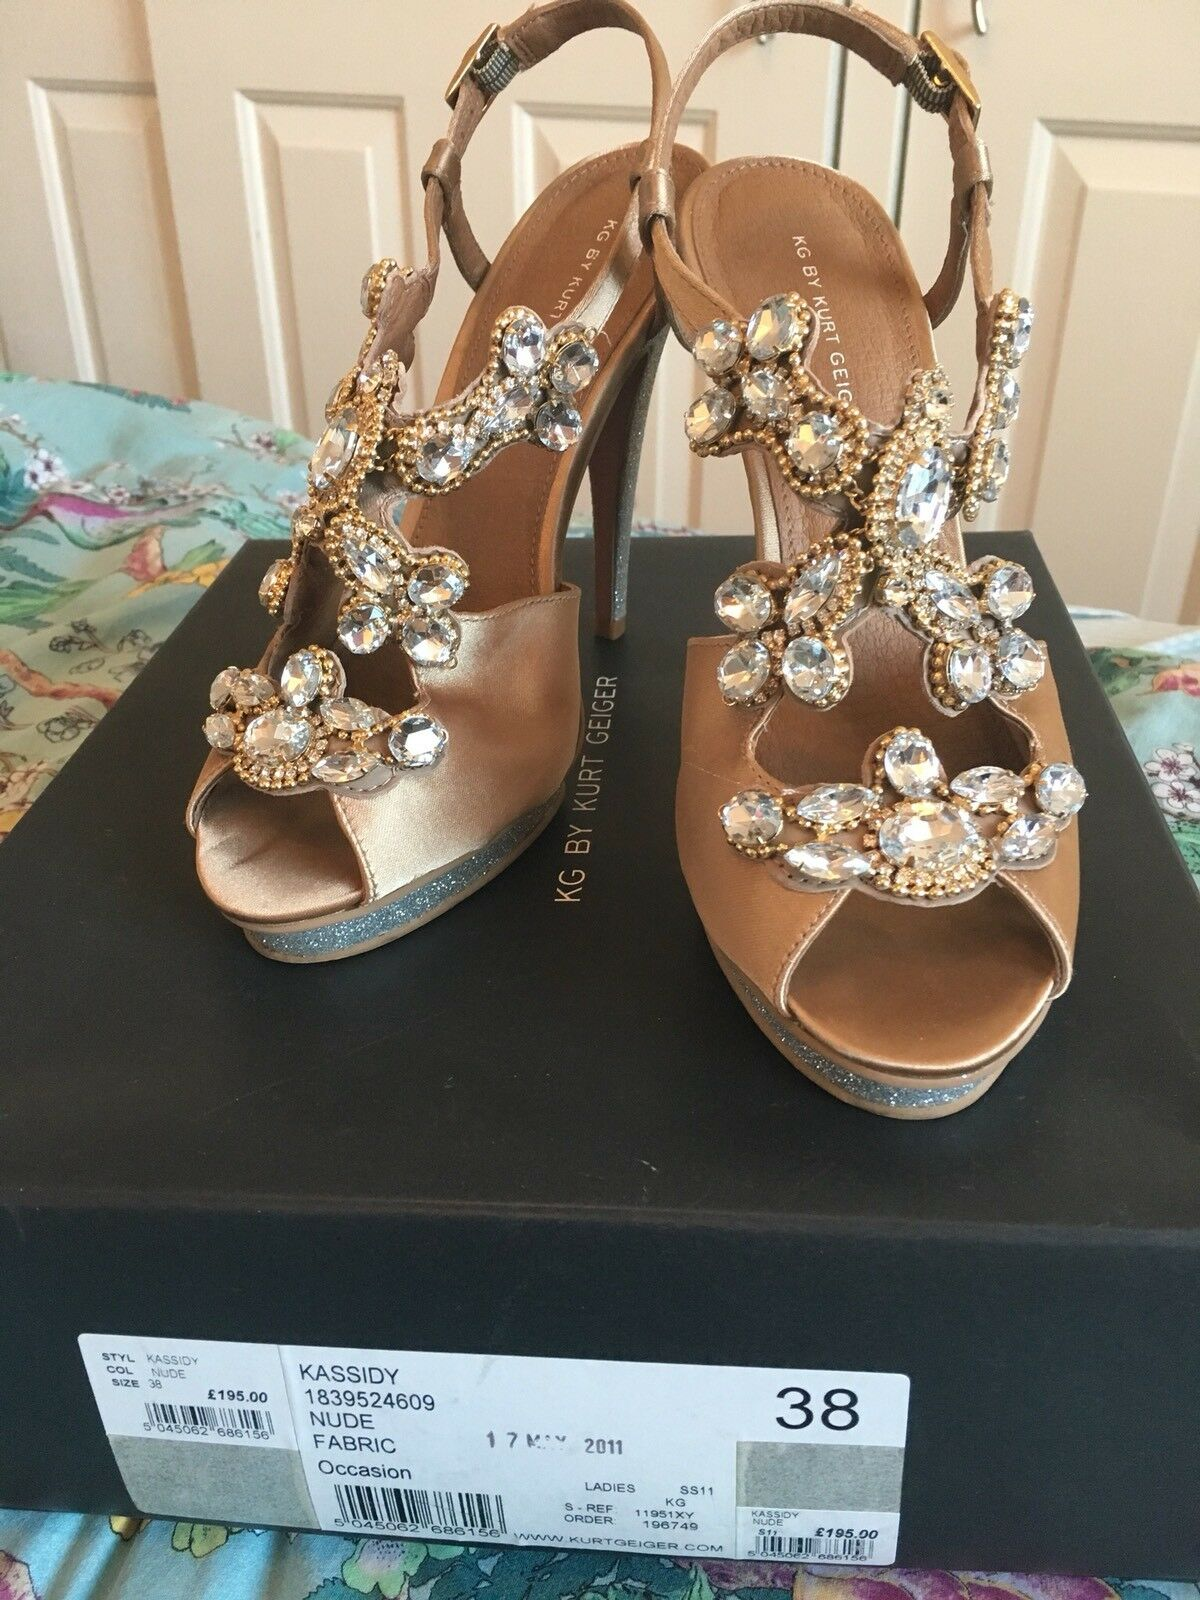 KG By Kurt Geiger Kassidy Chaussures Taille UK 5 EU 38 très rare coffret argent or Bal